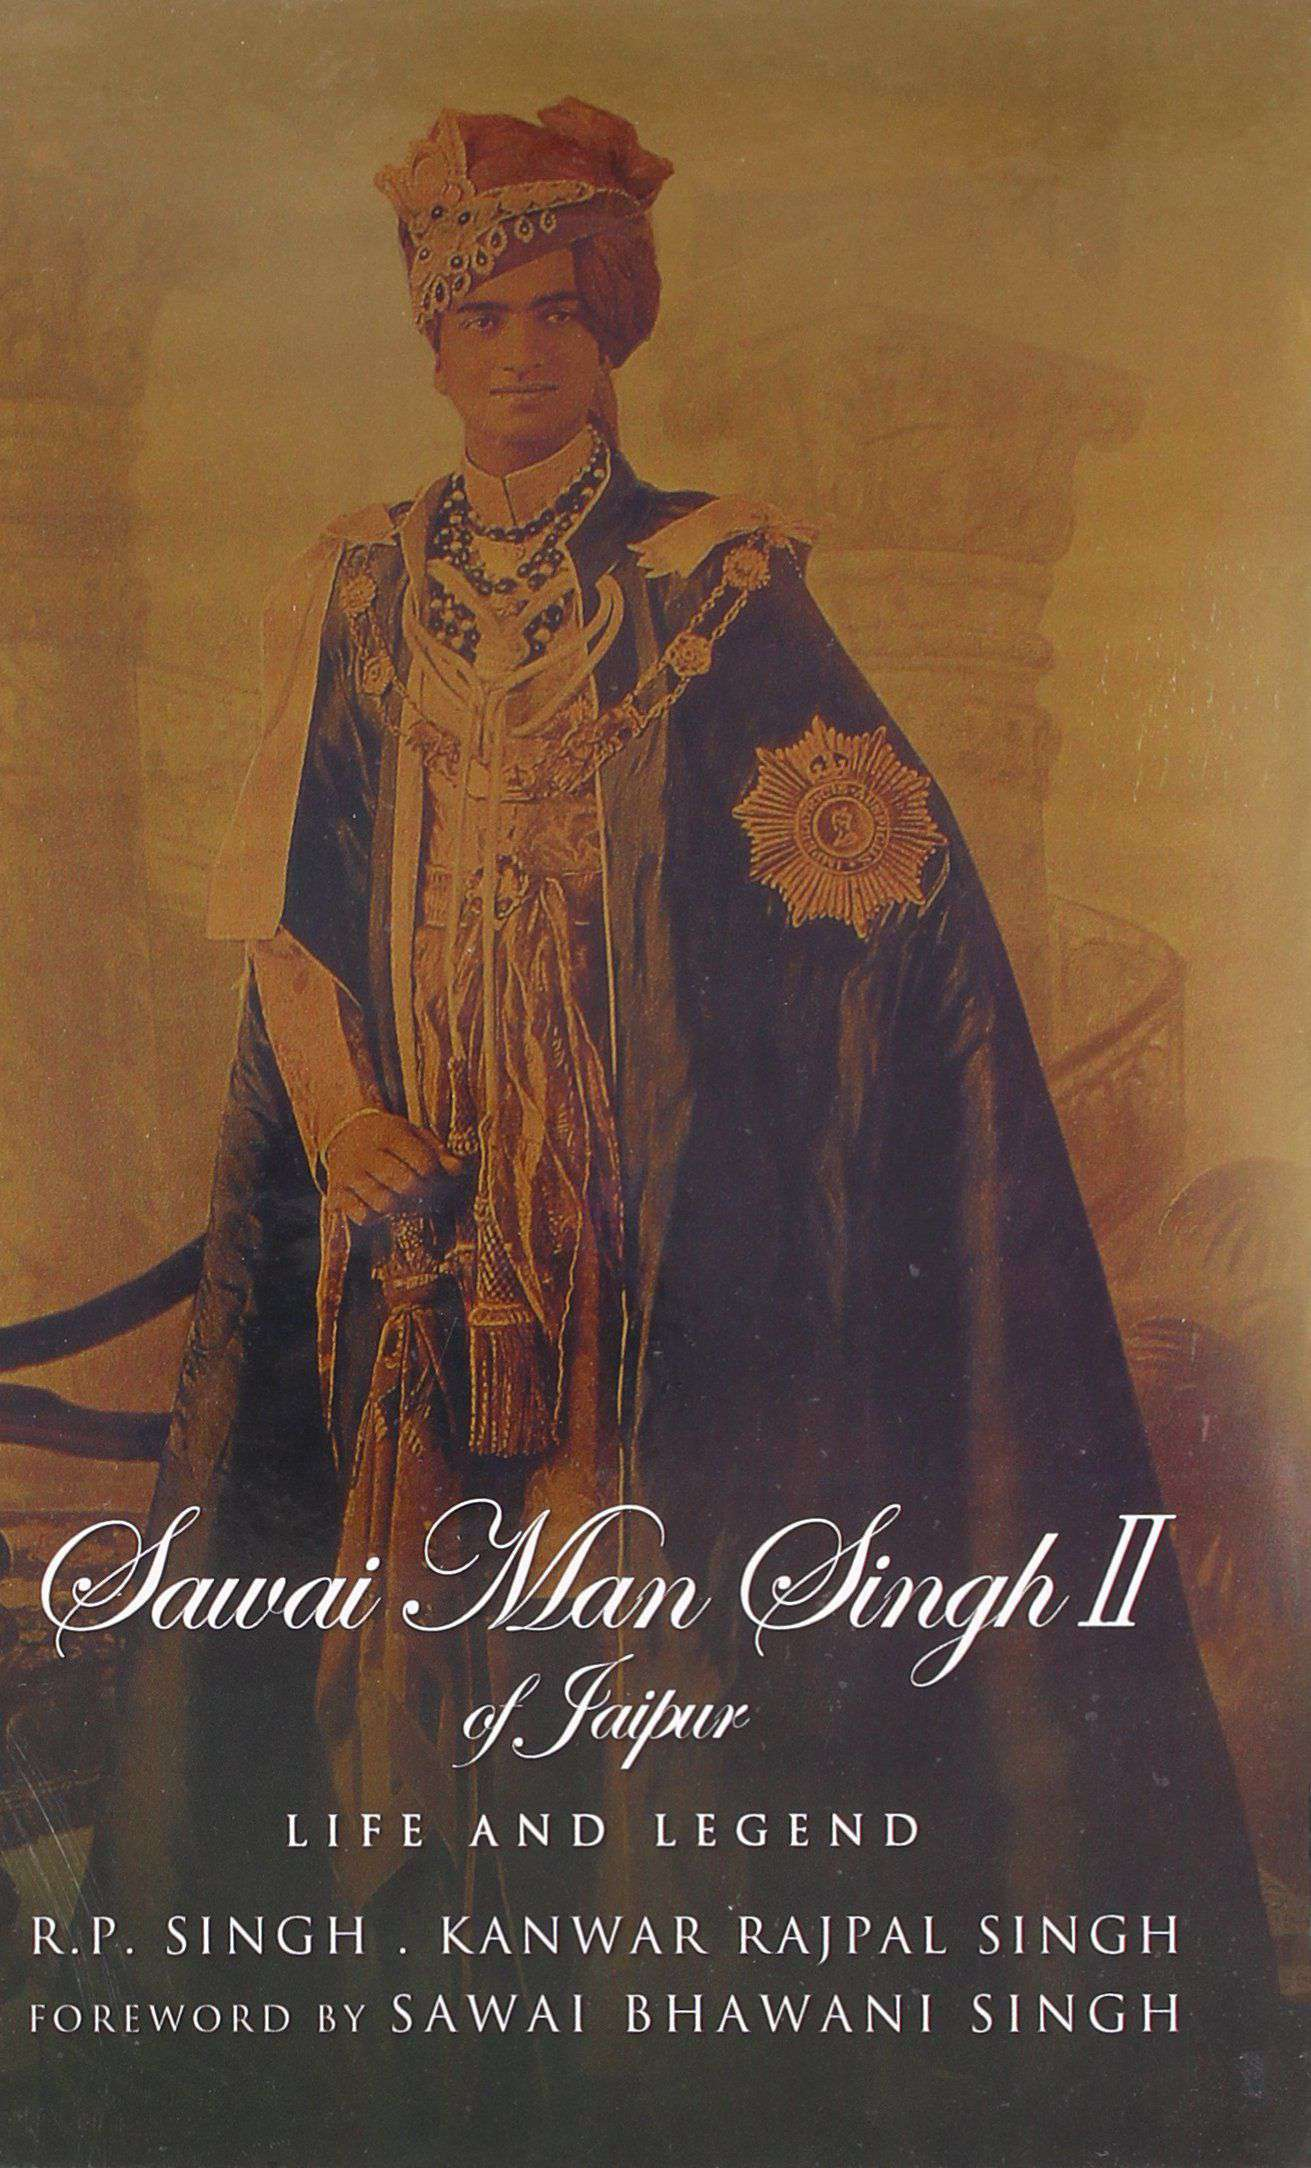 Sawai Man Singh II of Jaipur: Life and Legend